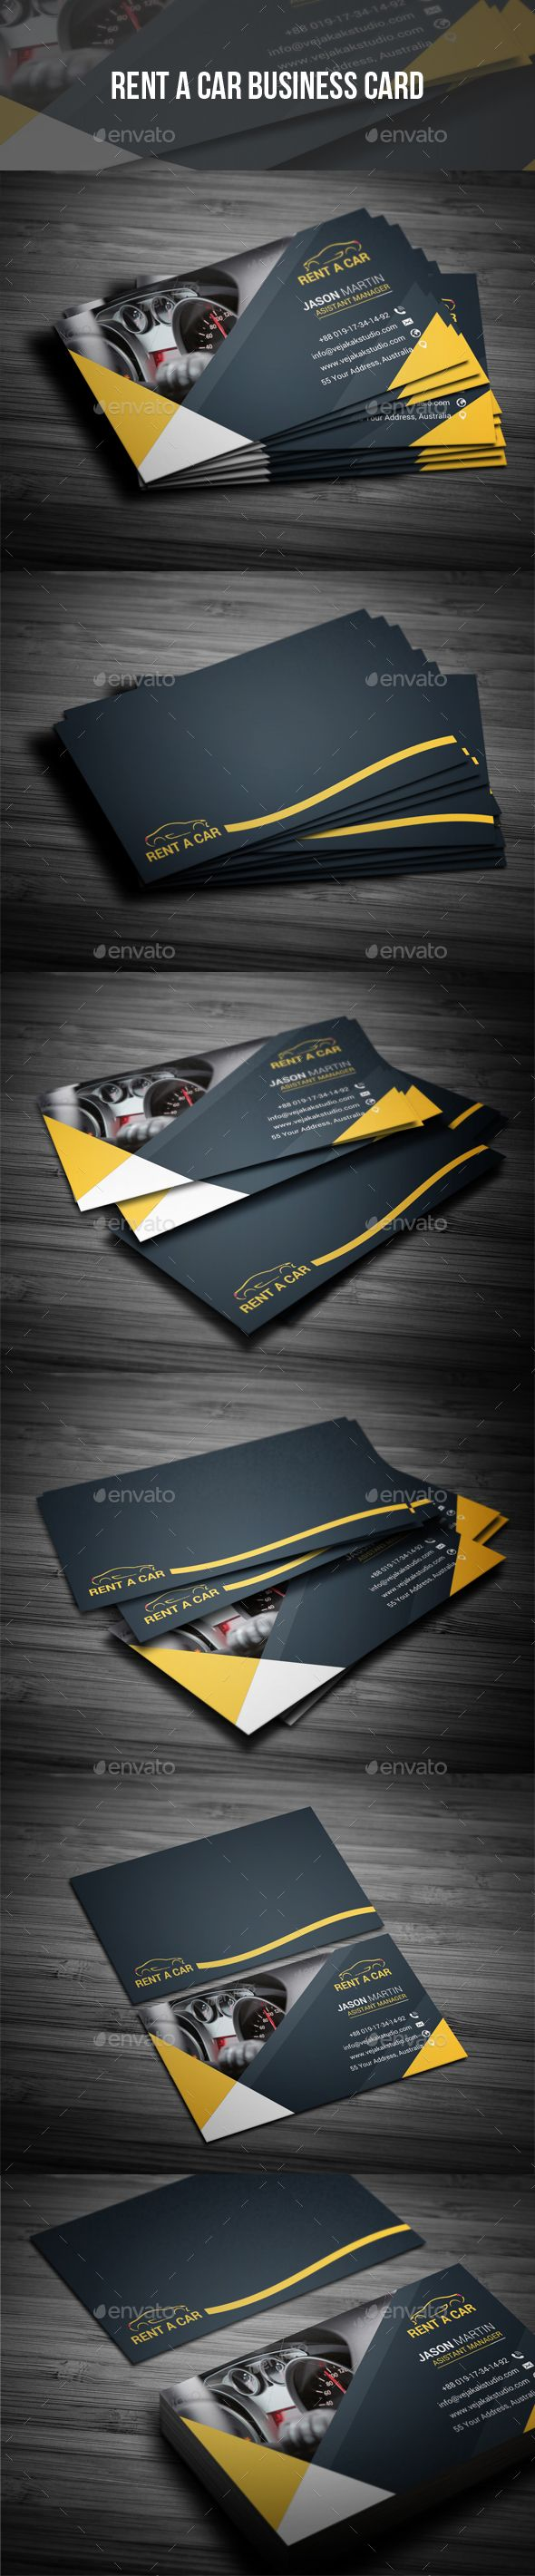 Rent A Car Business Card - Industry Specific Business Cards Download here : https://graphicriver.net/item/rent-a-car-business-card/19361594?s_rank=65&ref=Al-fatih